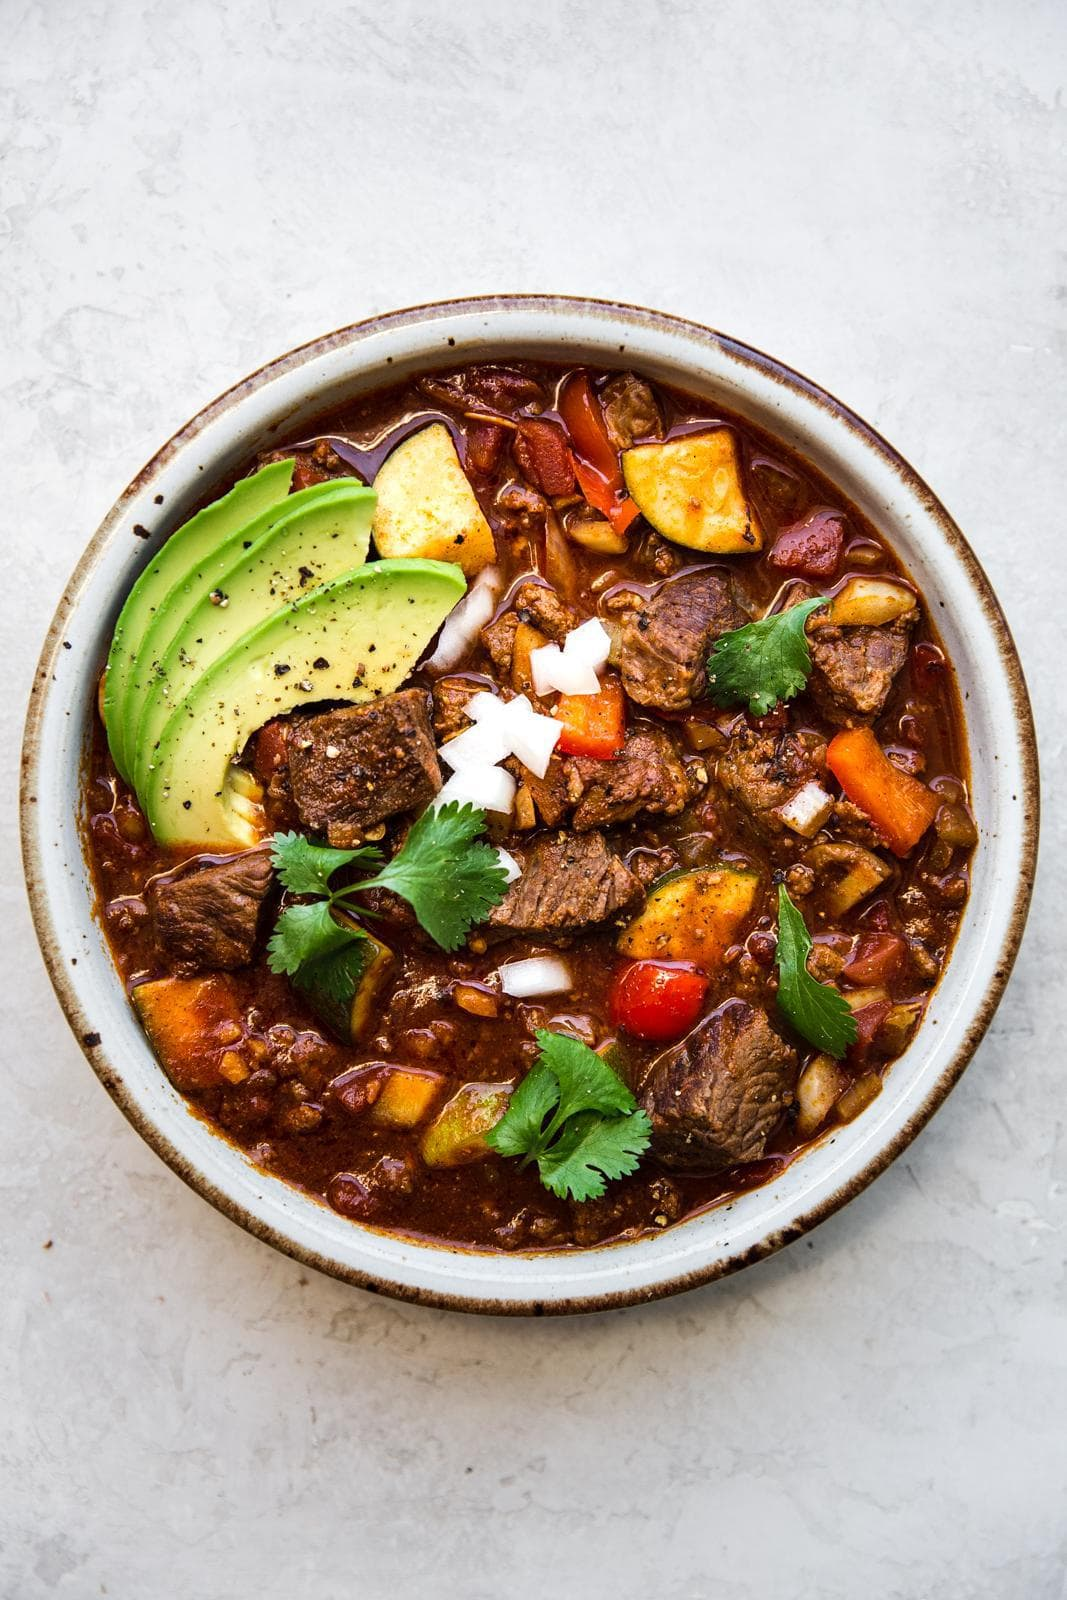 Bowl of crockpot paleo chili garnished with avocado